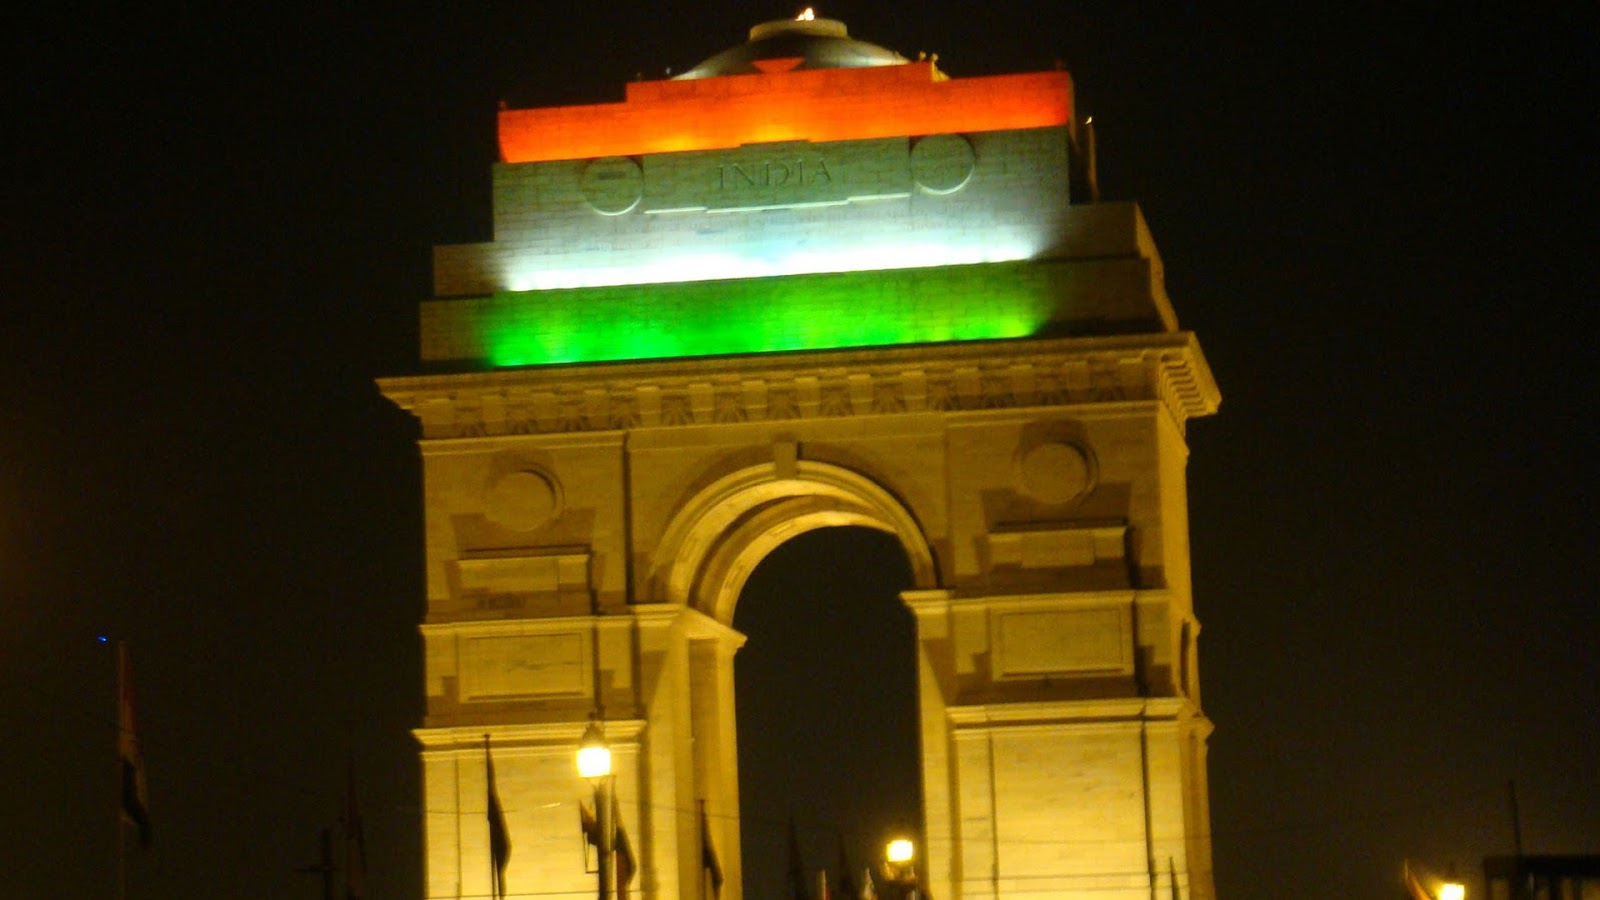 Indian Republic Day Wallpapers 1080p Hd Wallpapers High